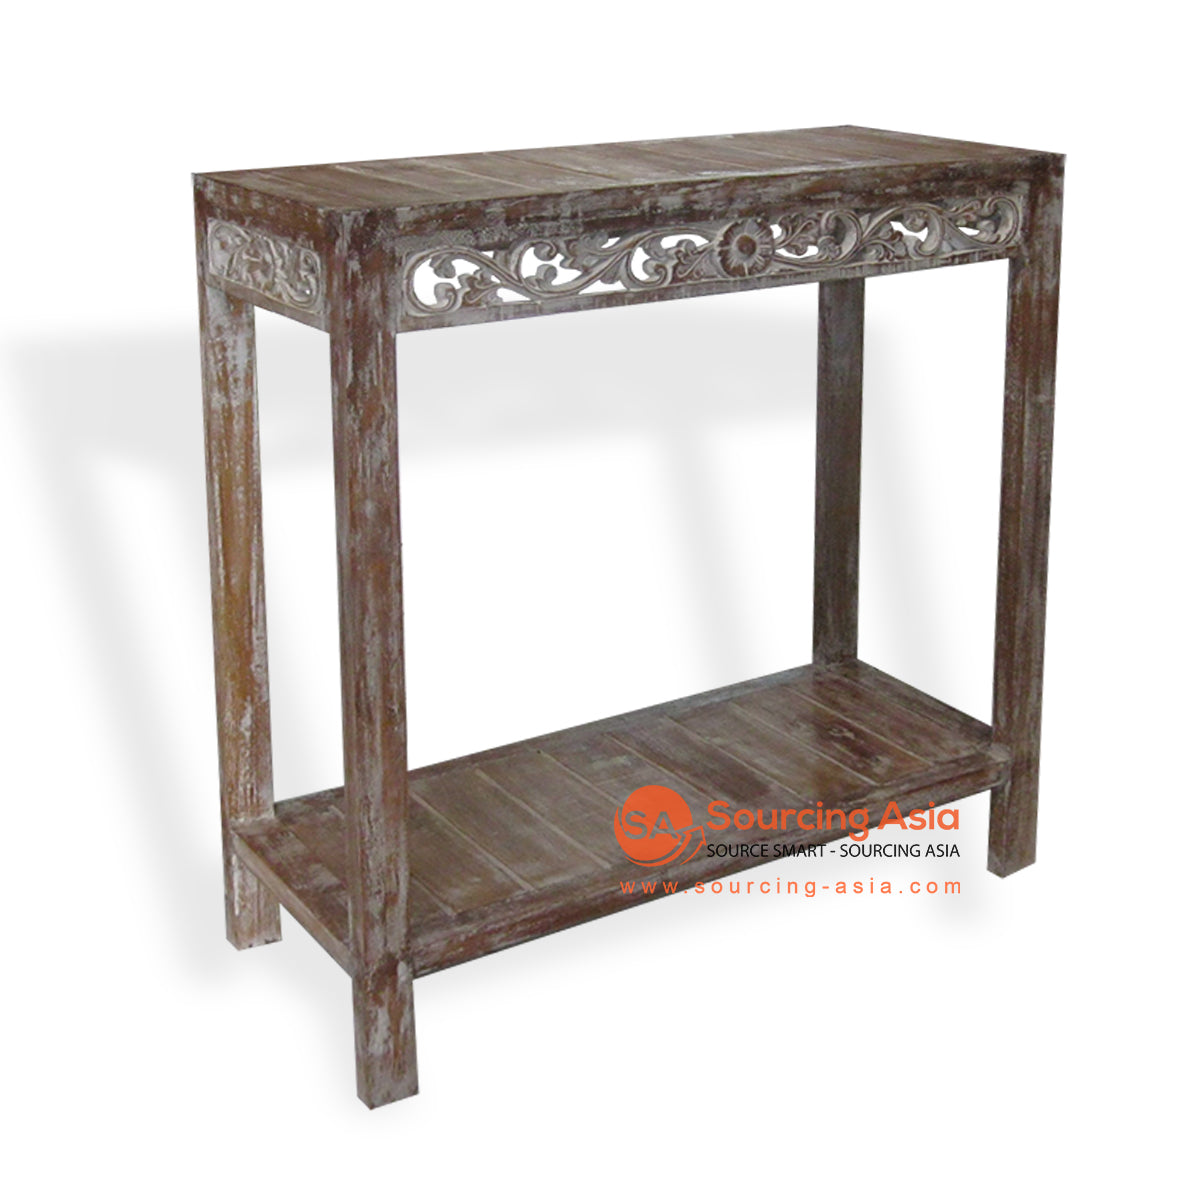 THE014-1 CONSOLE TABLE WITH CARVING LIGHT BROWN